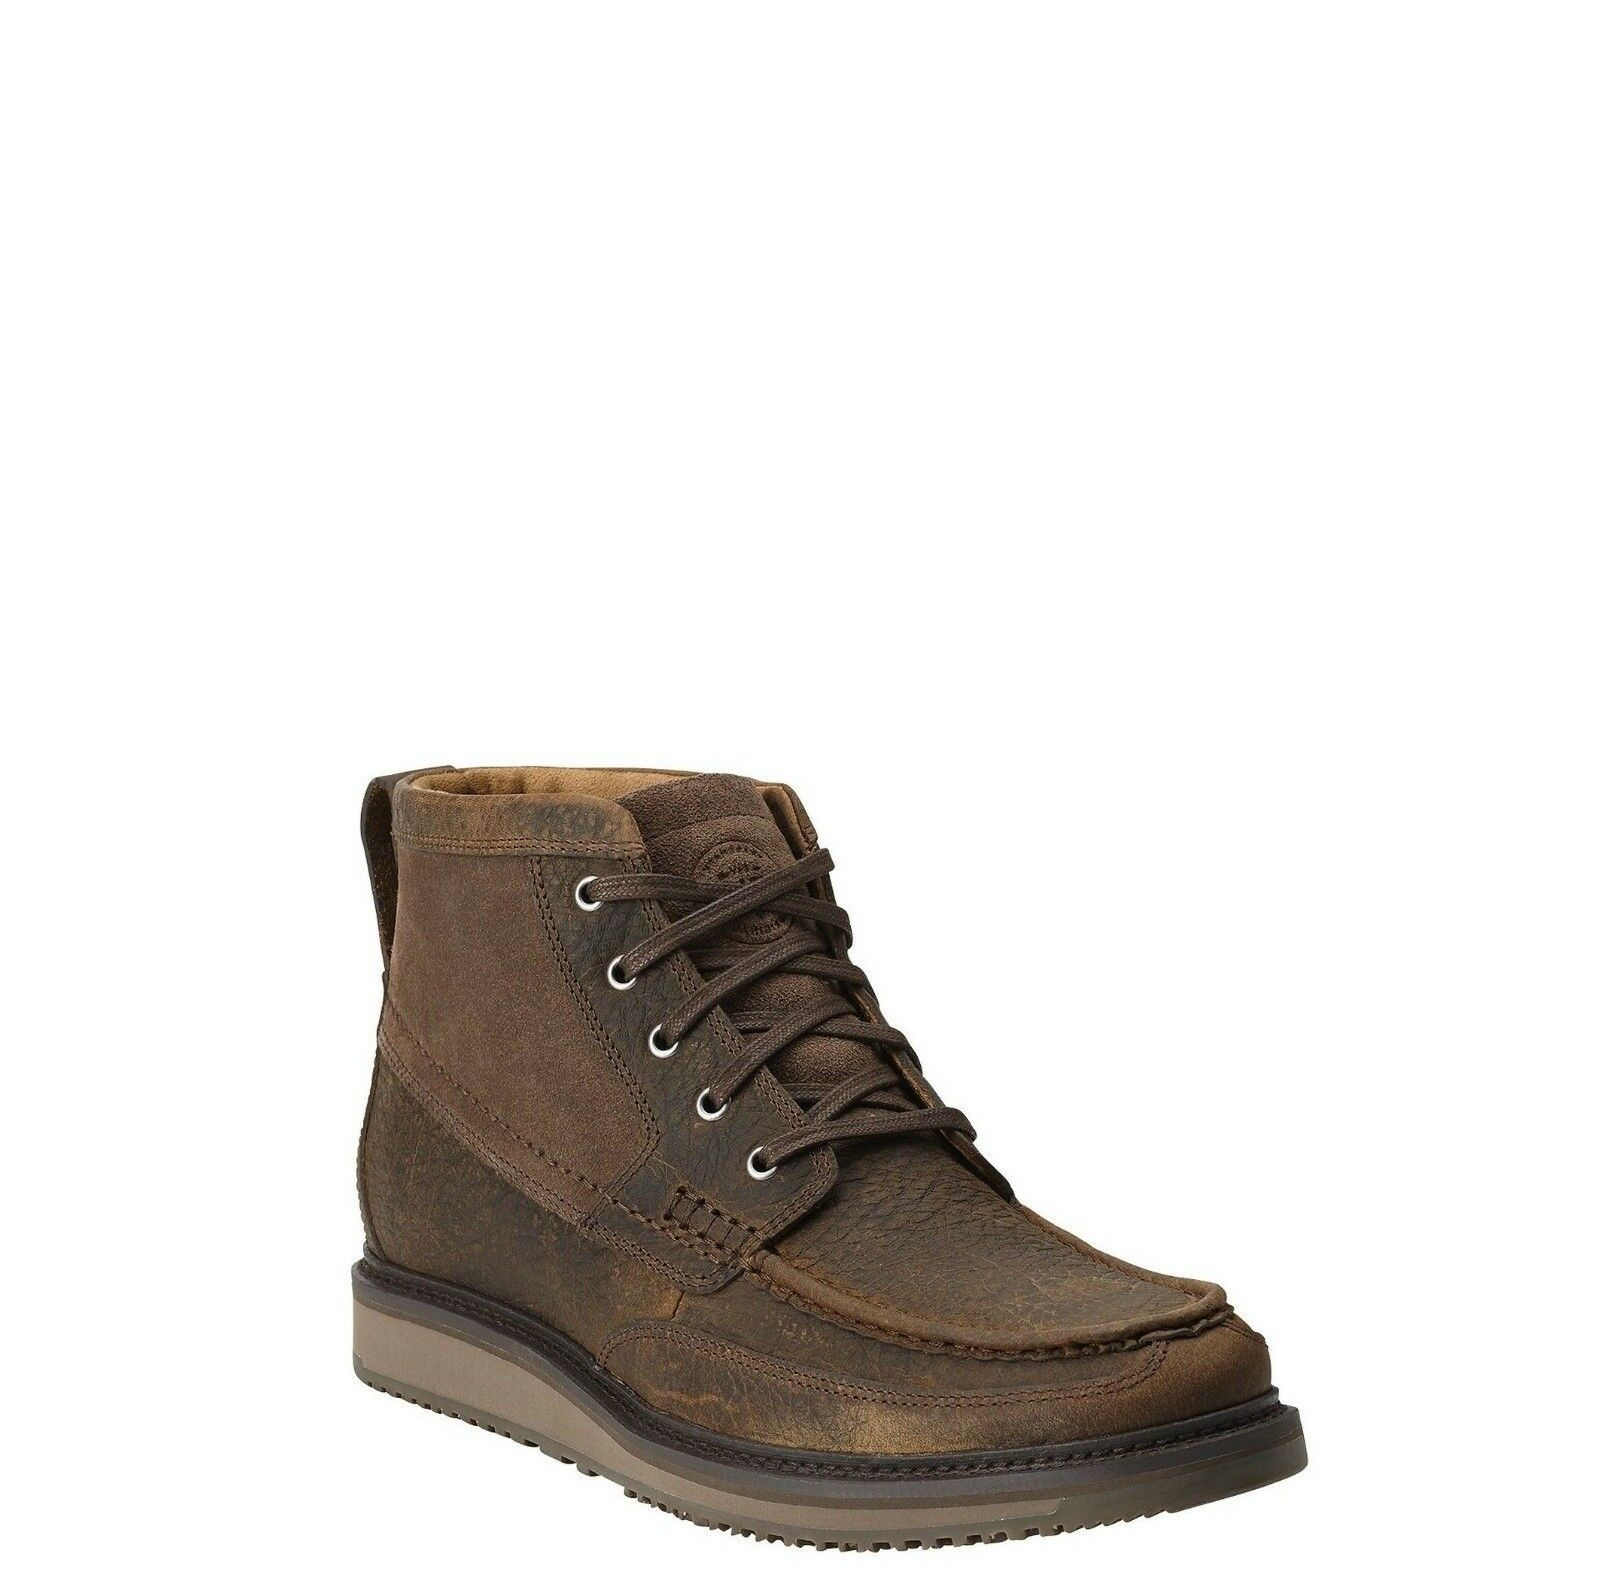 Ariat Men's Lookout Earth Stone Suede Brown Boot 10014153